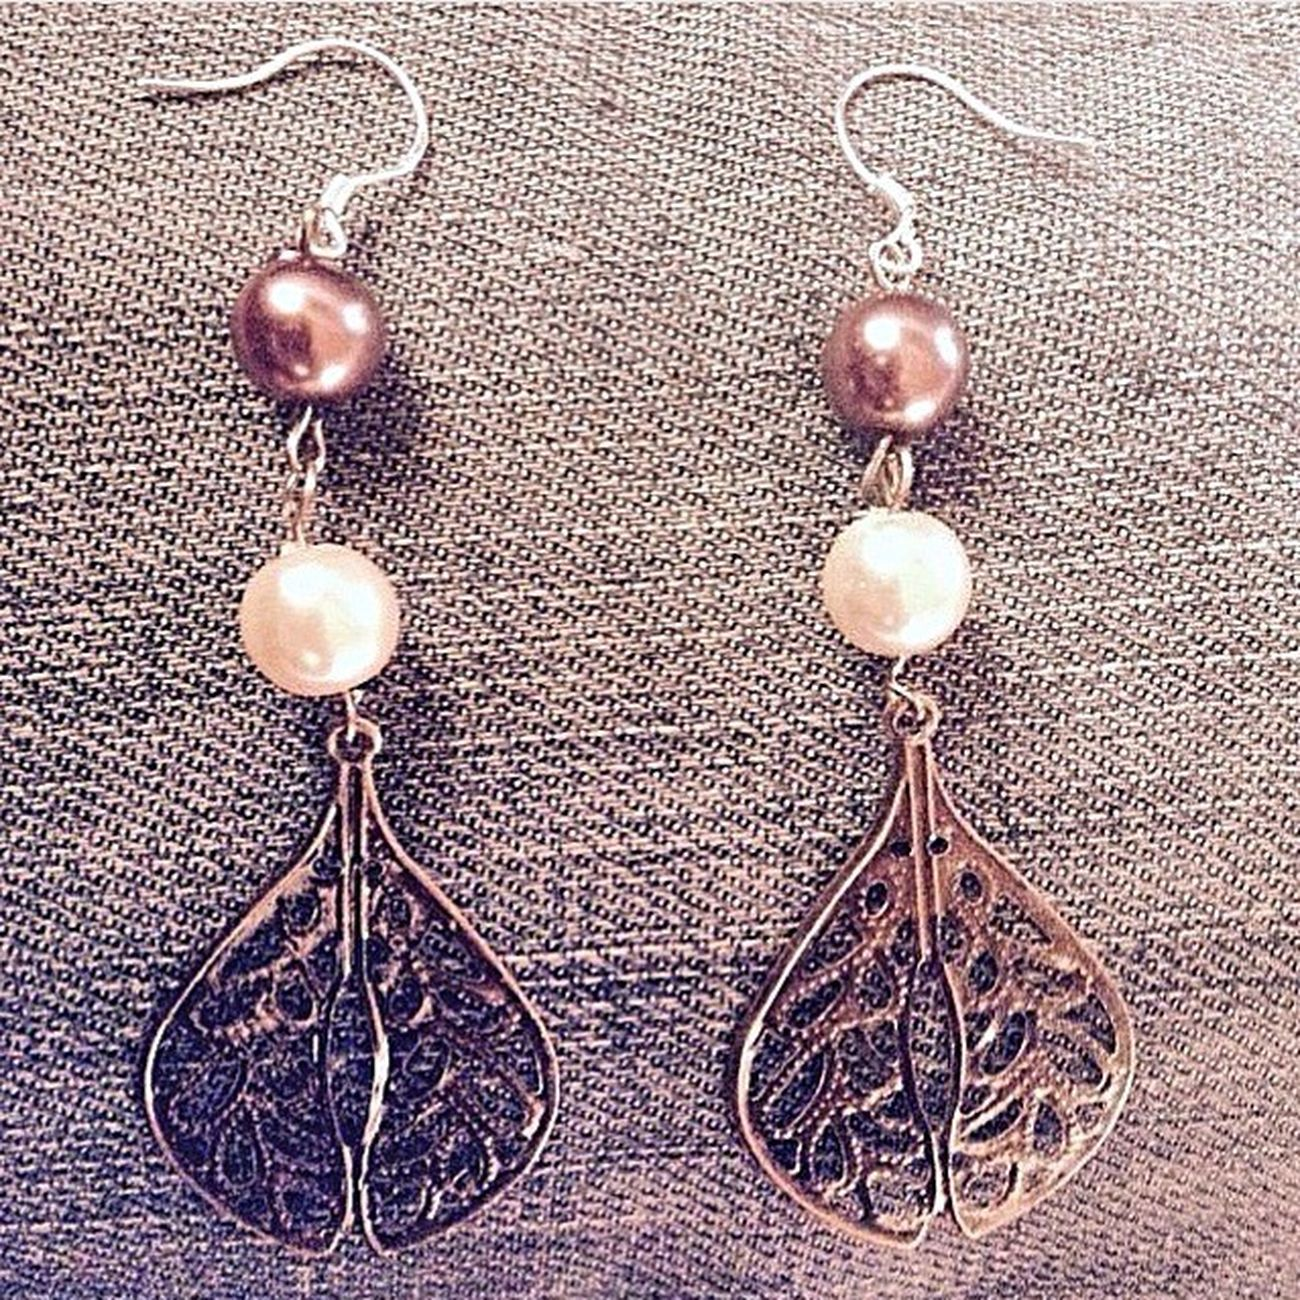 Handcrafted Earrings ❤ Photography Jewelry Earring  Handmade Jewellery Accesories Jewelrymaking Handmade Teardrop Style